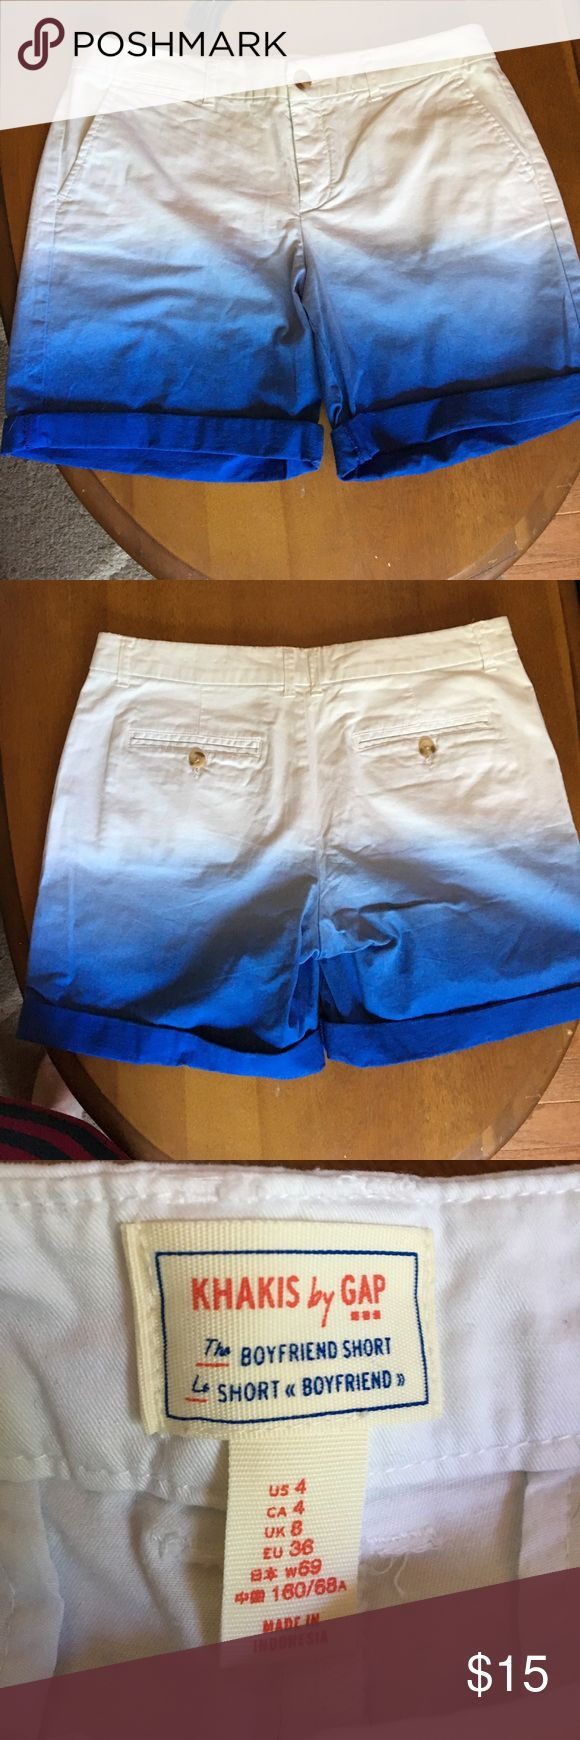 "Khakis by Gap blue and white ombré shorts Adorable ombré shorts from Gap. Hardly worn! 5"" inseam without cuffing the bottom of the shorts. GAP Shorts"